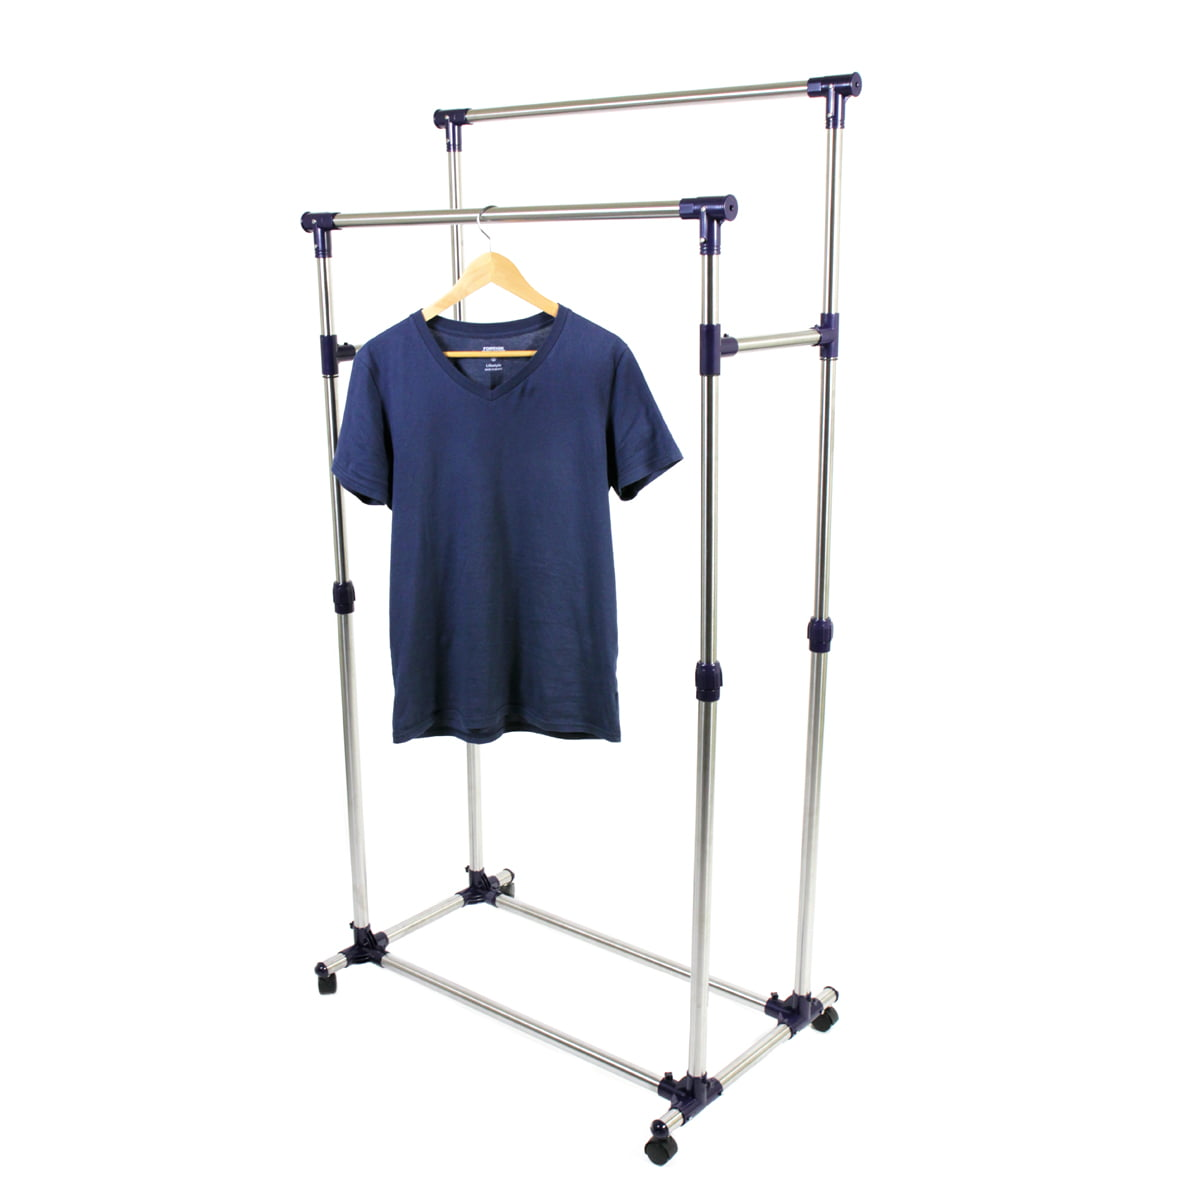 Delicieux ProSource Premium Heavy Duty Double Rail Adjustable Telescopic Rolling  Clothing And Garment Rack   Walmart.com